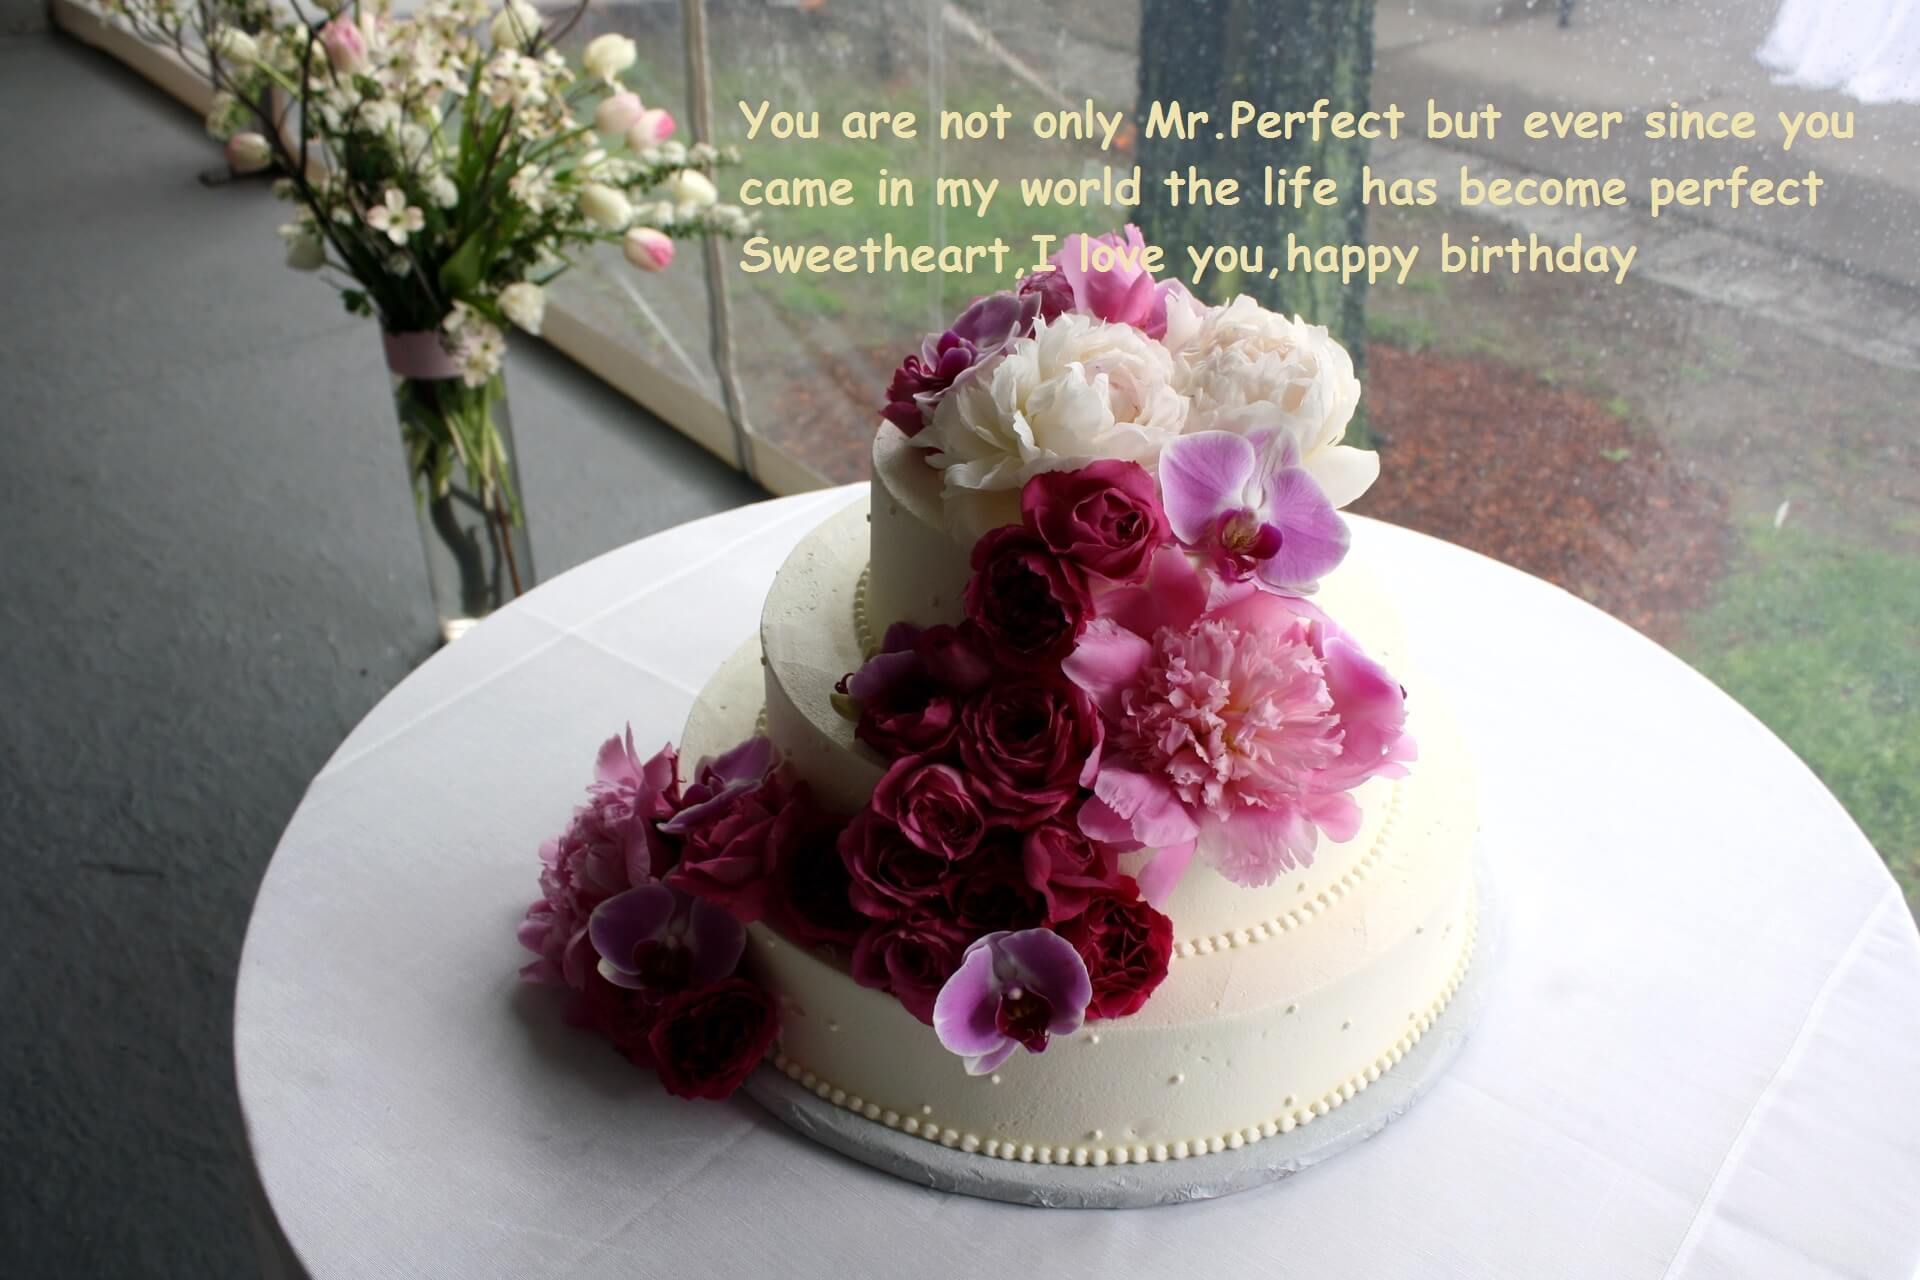 Birthday Wishes Images With Cake And Flowers : Happy Birthday Cake Wishes With Flowers Best Wishes